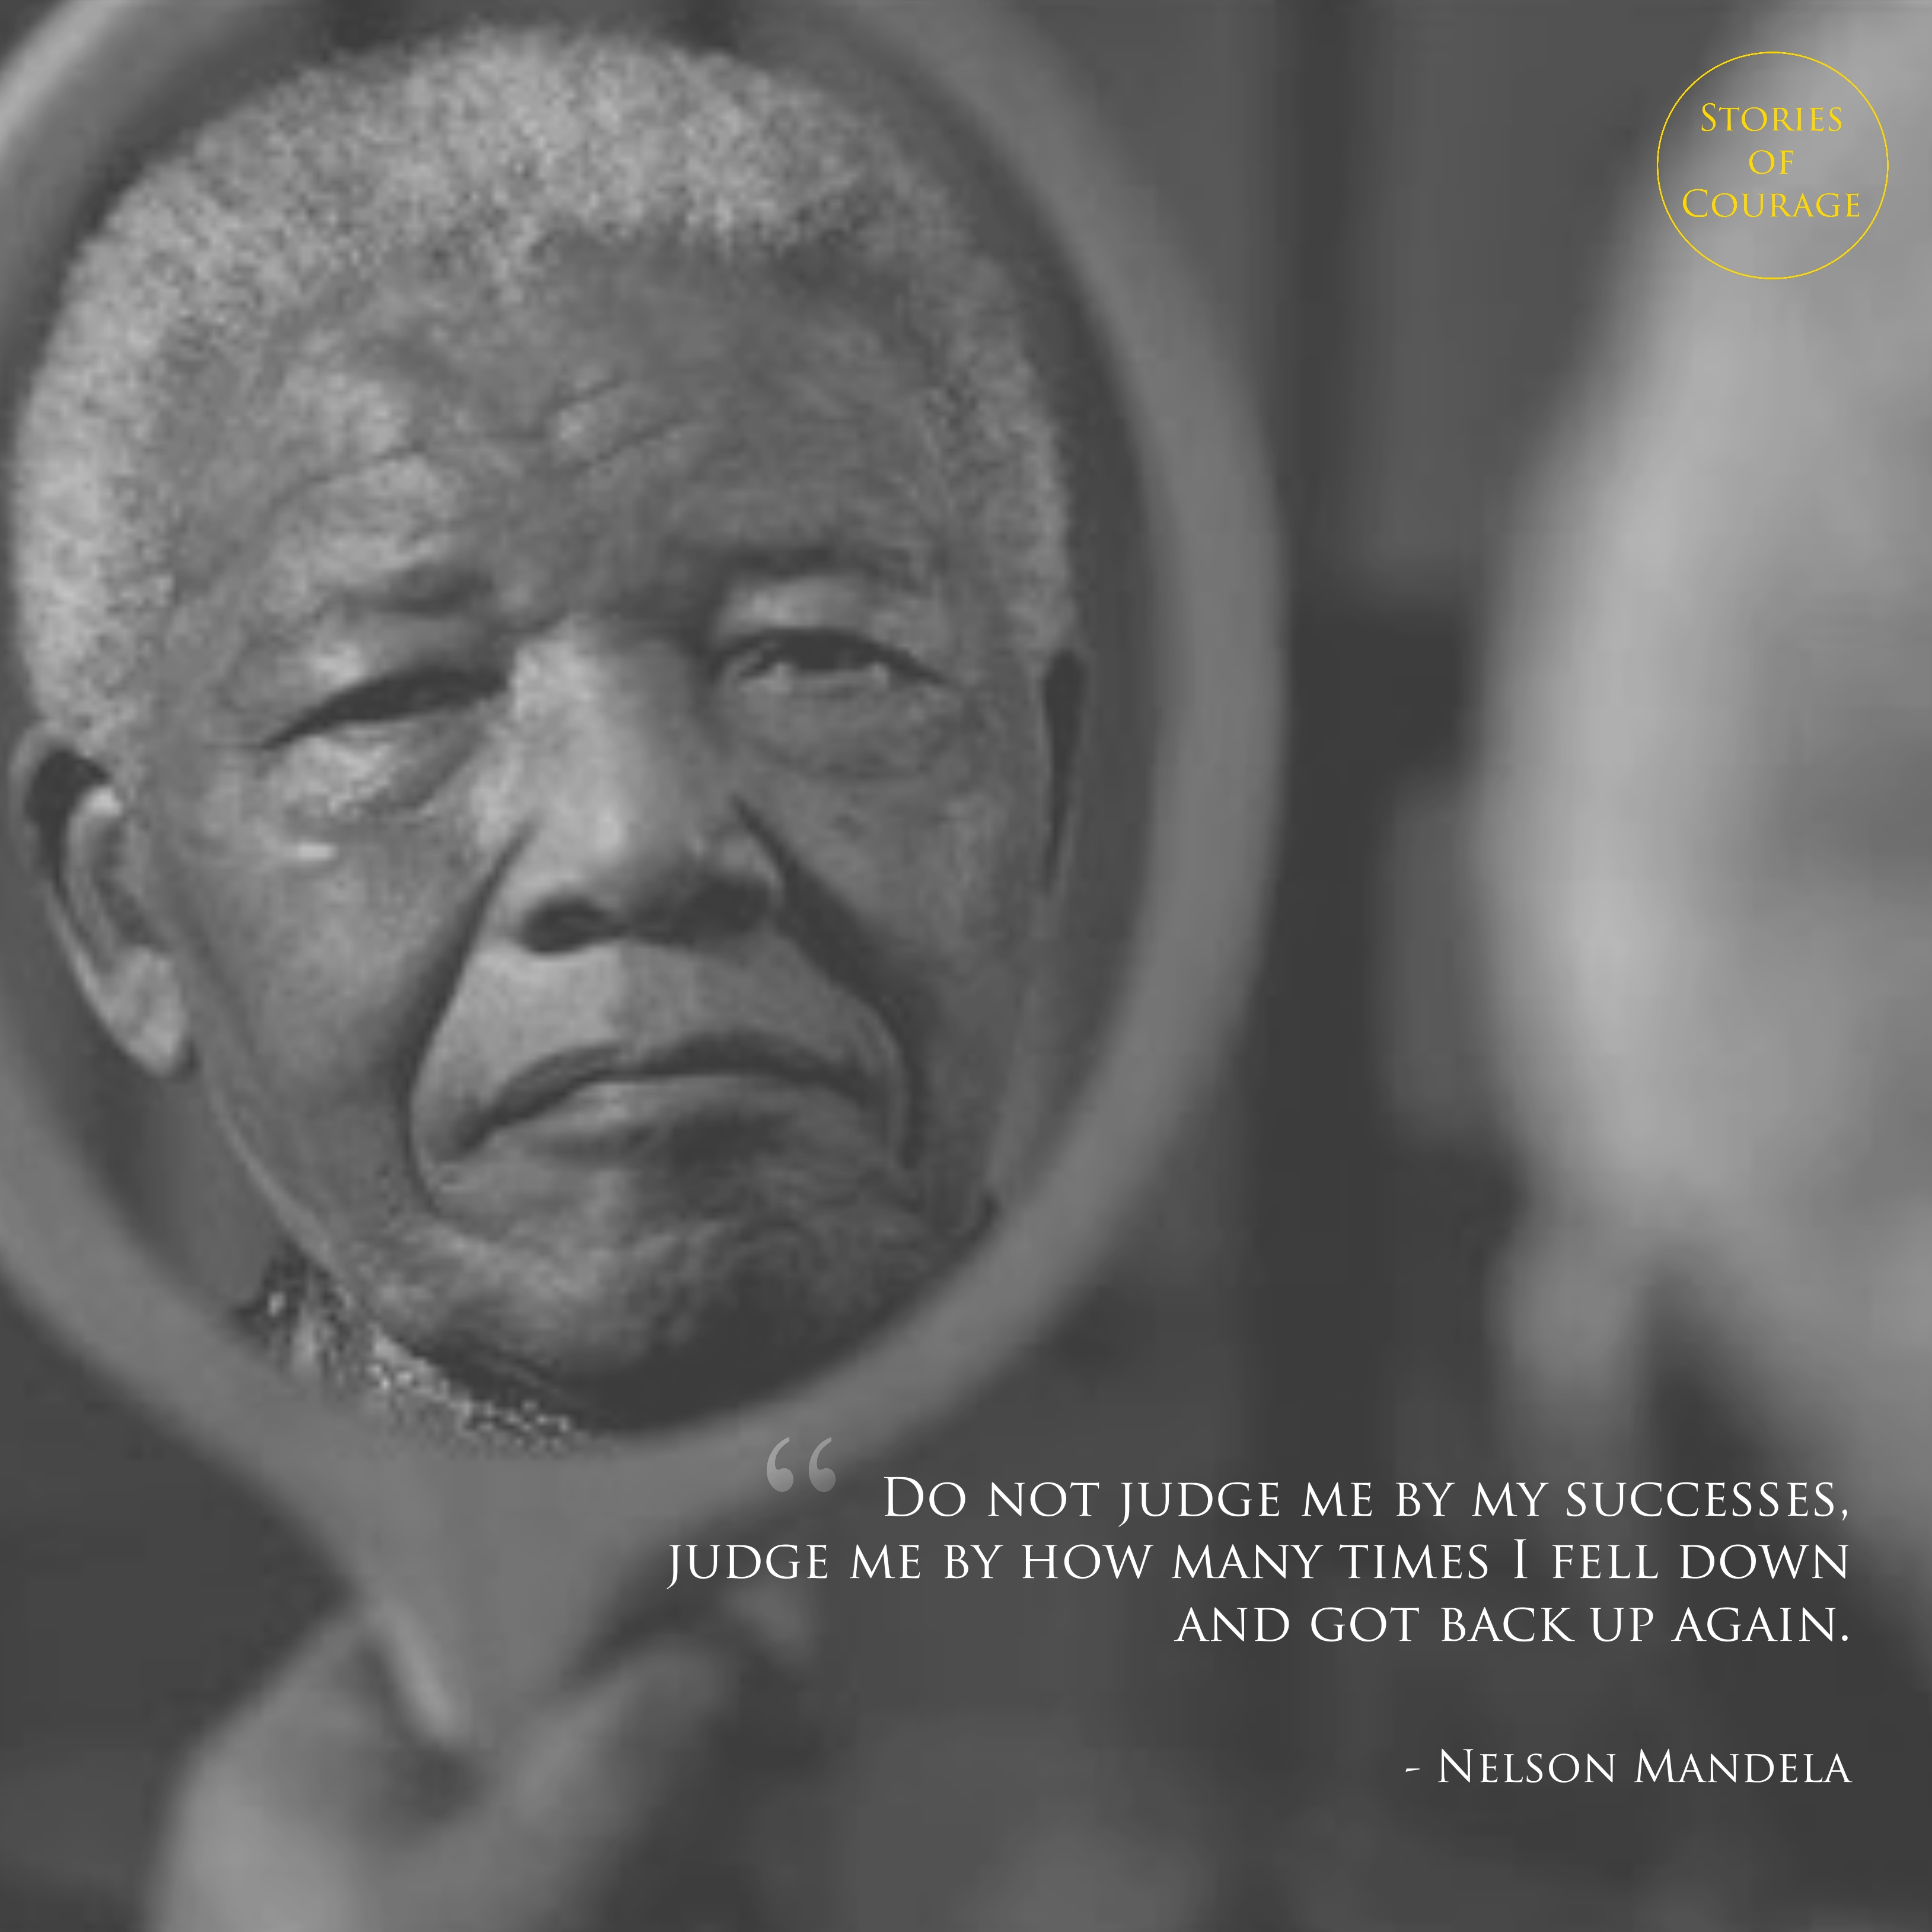 Quotes Nelson Mandela Soc Quotes  Nelson Mandela 1  Courage Stories